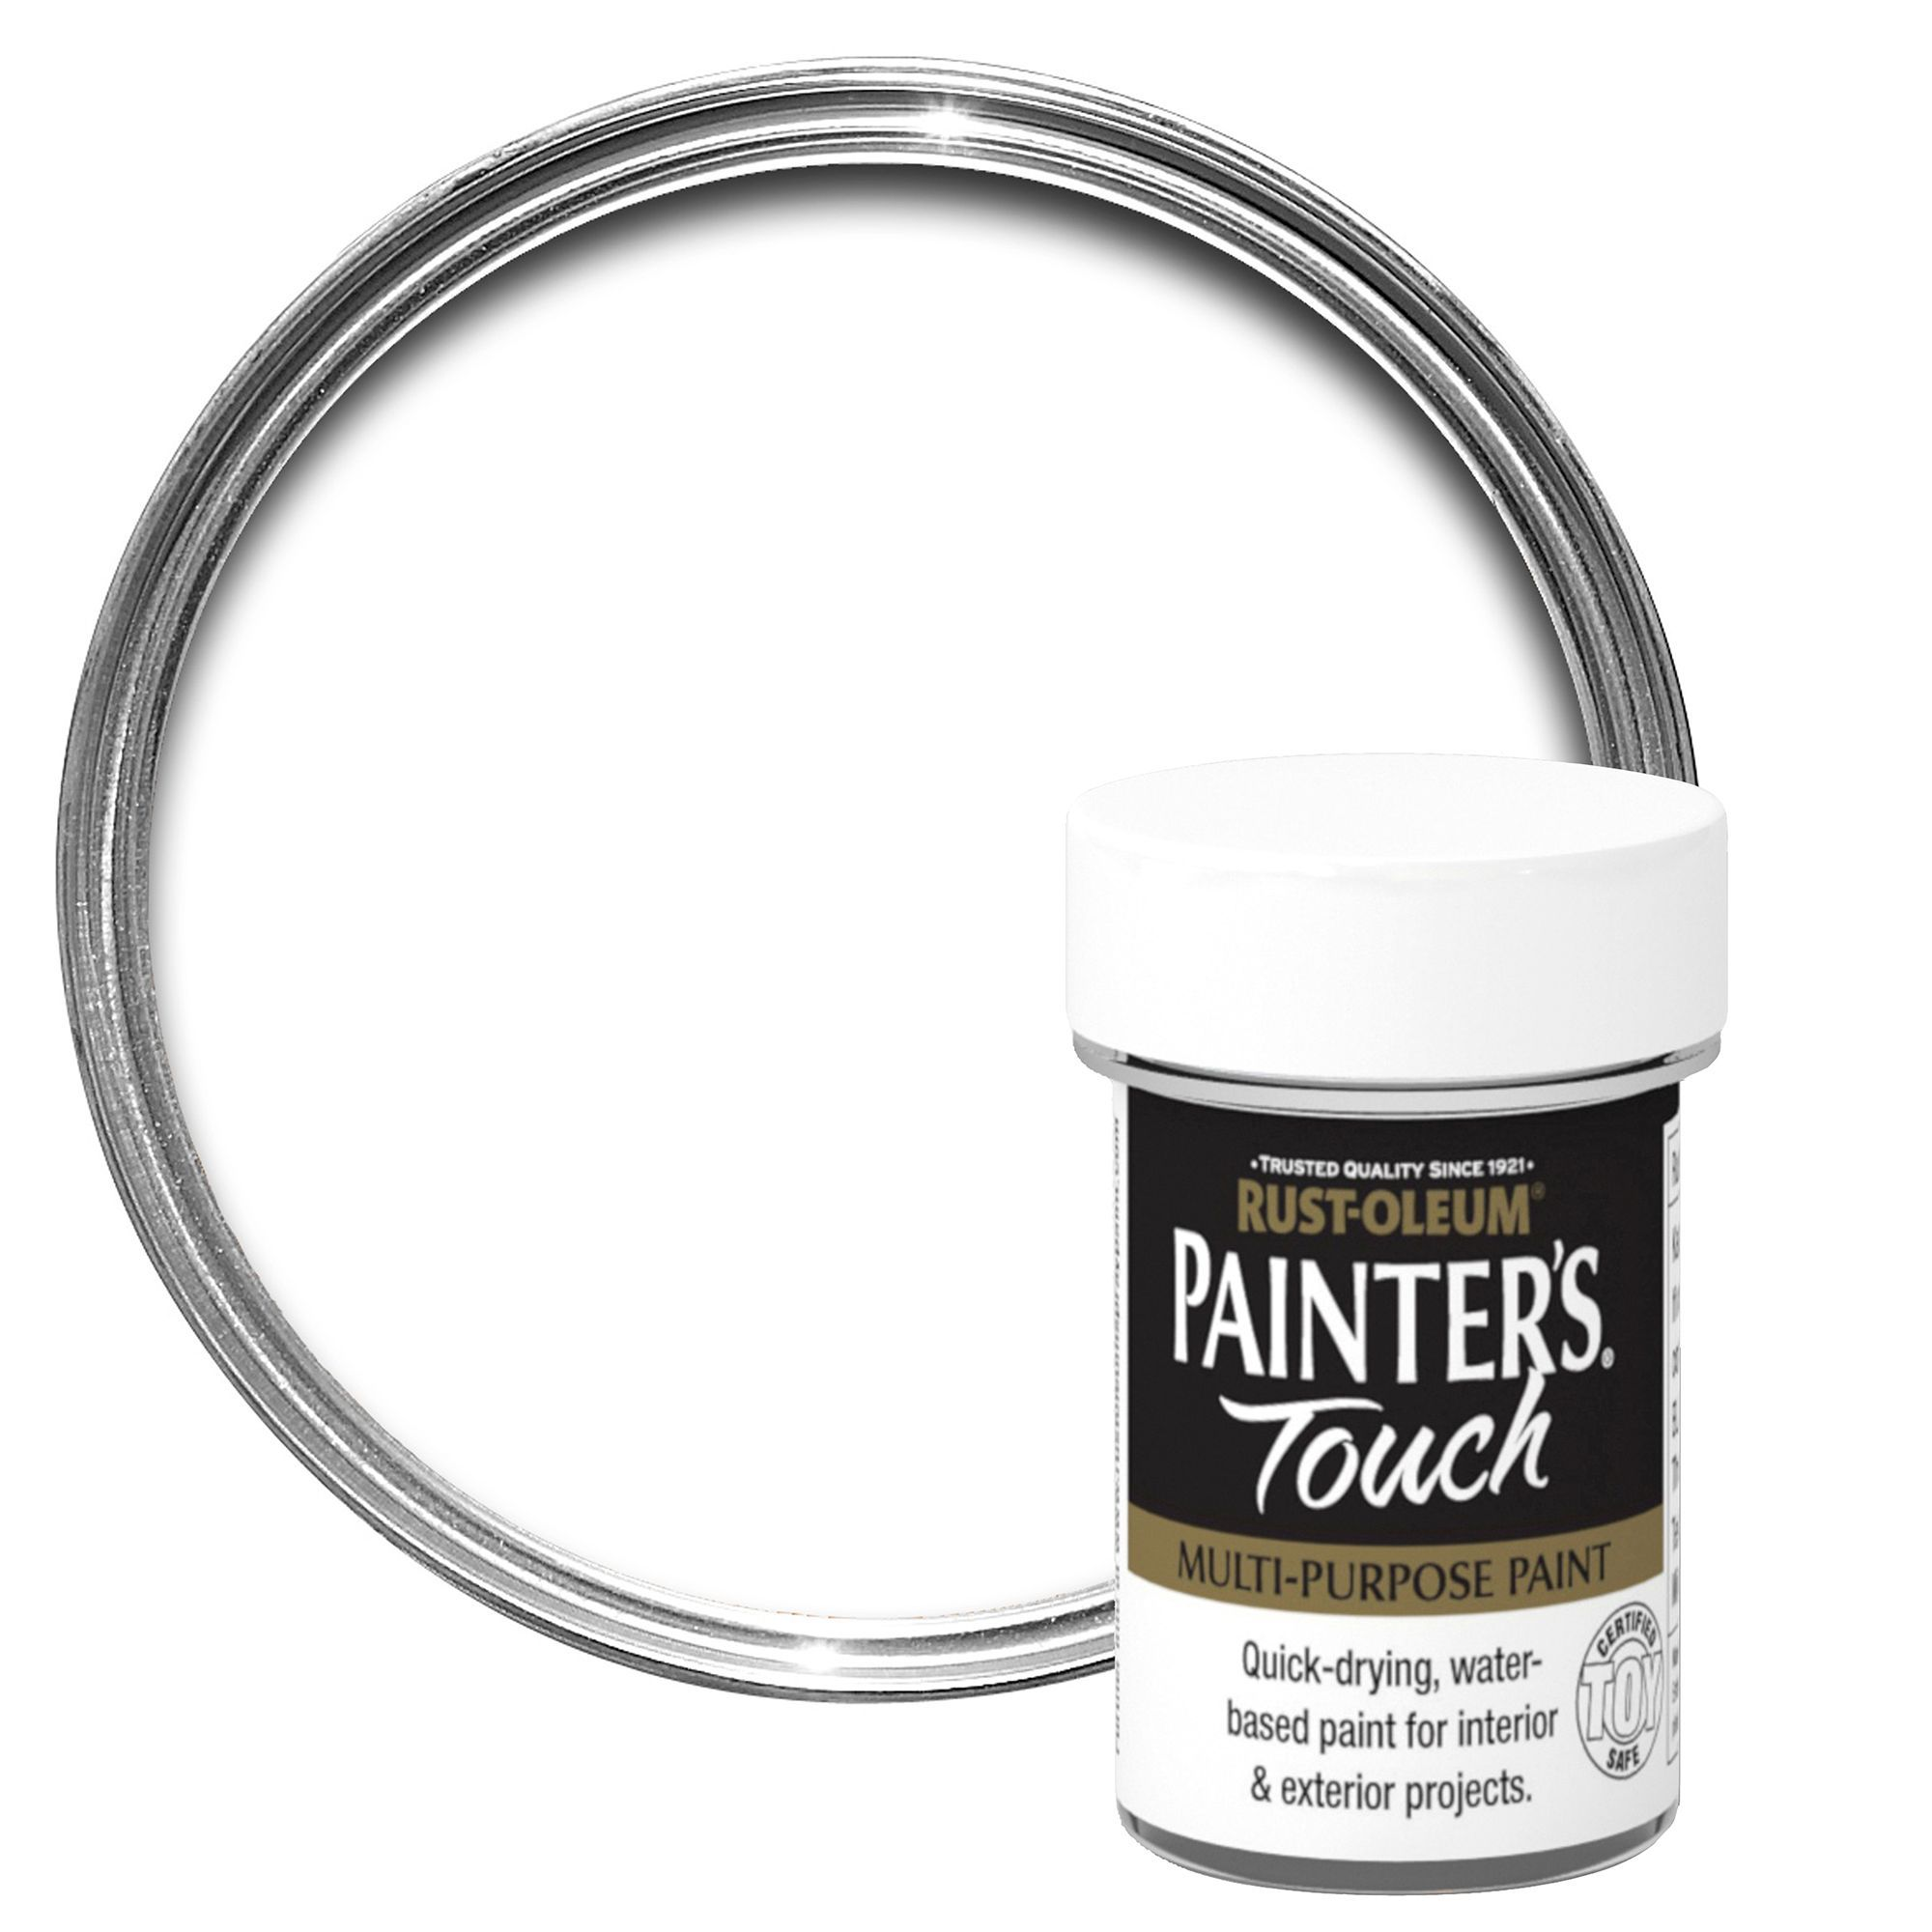 Rust-oleum Painter's Touch Interior & Exterior White Gloss Multipurpose Paint 20ml